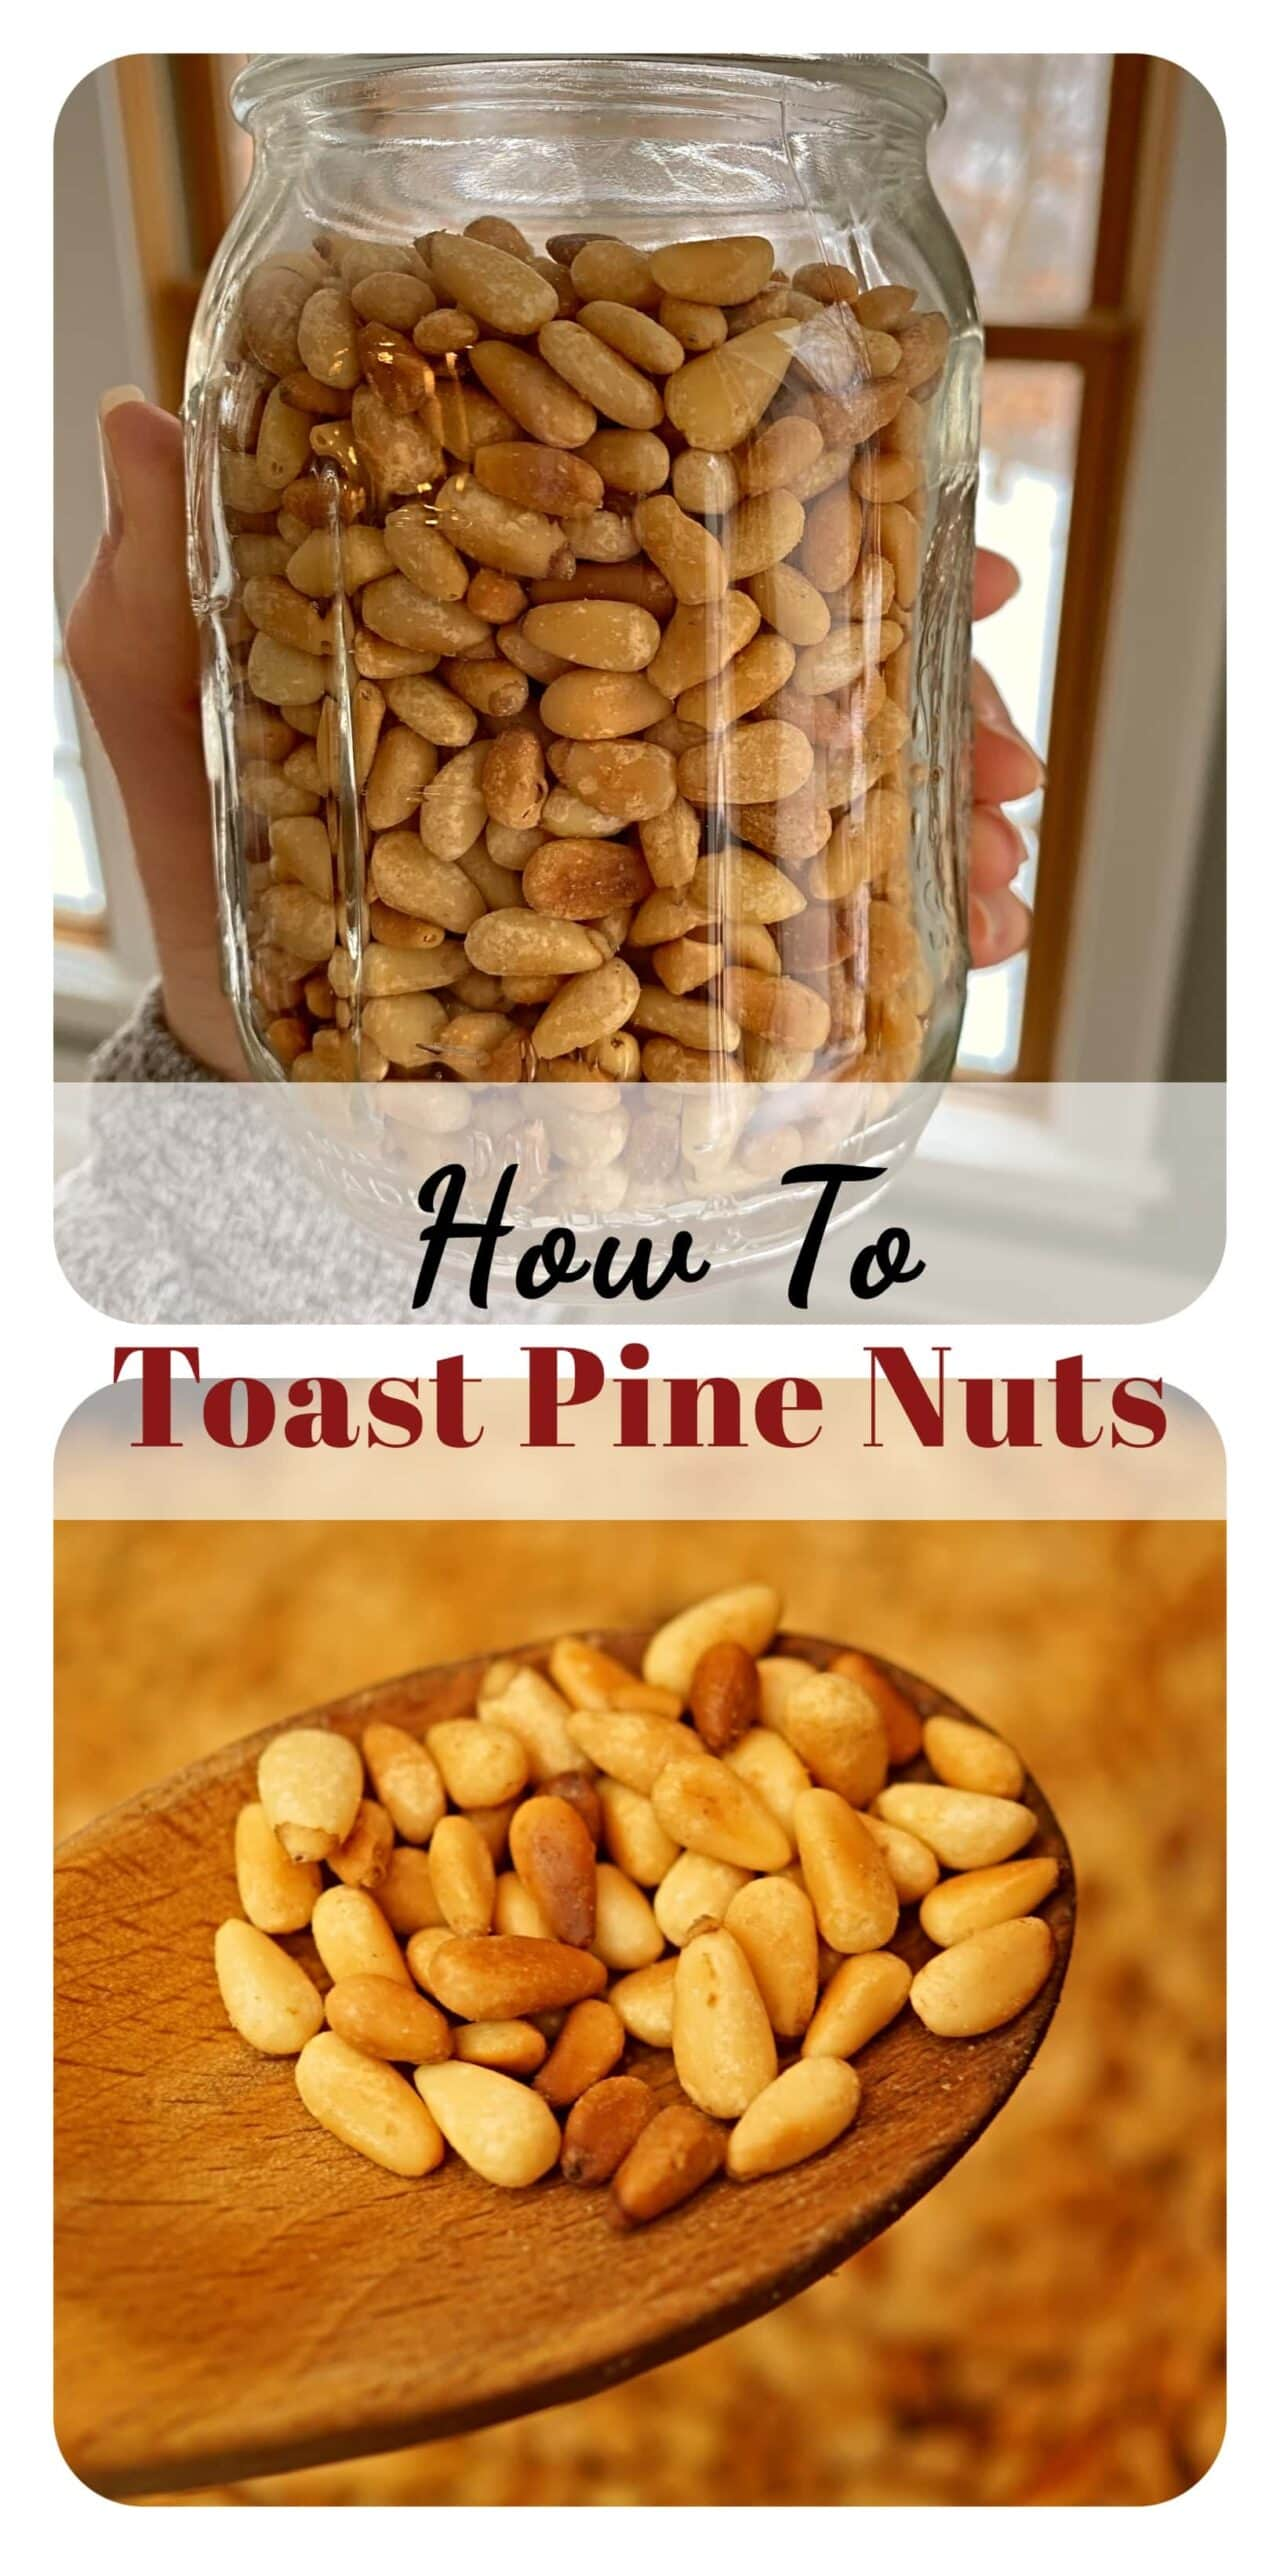 What are Pine Nuts and how are they used? Read here to find out how to toasts pine nuts and enhance your meals. Step-by-step instructions. -APinchOfAdventure